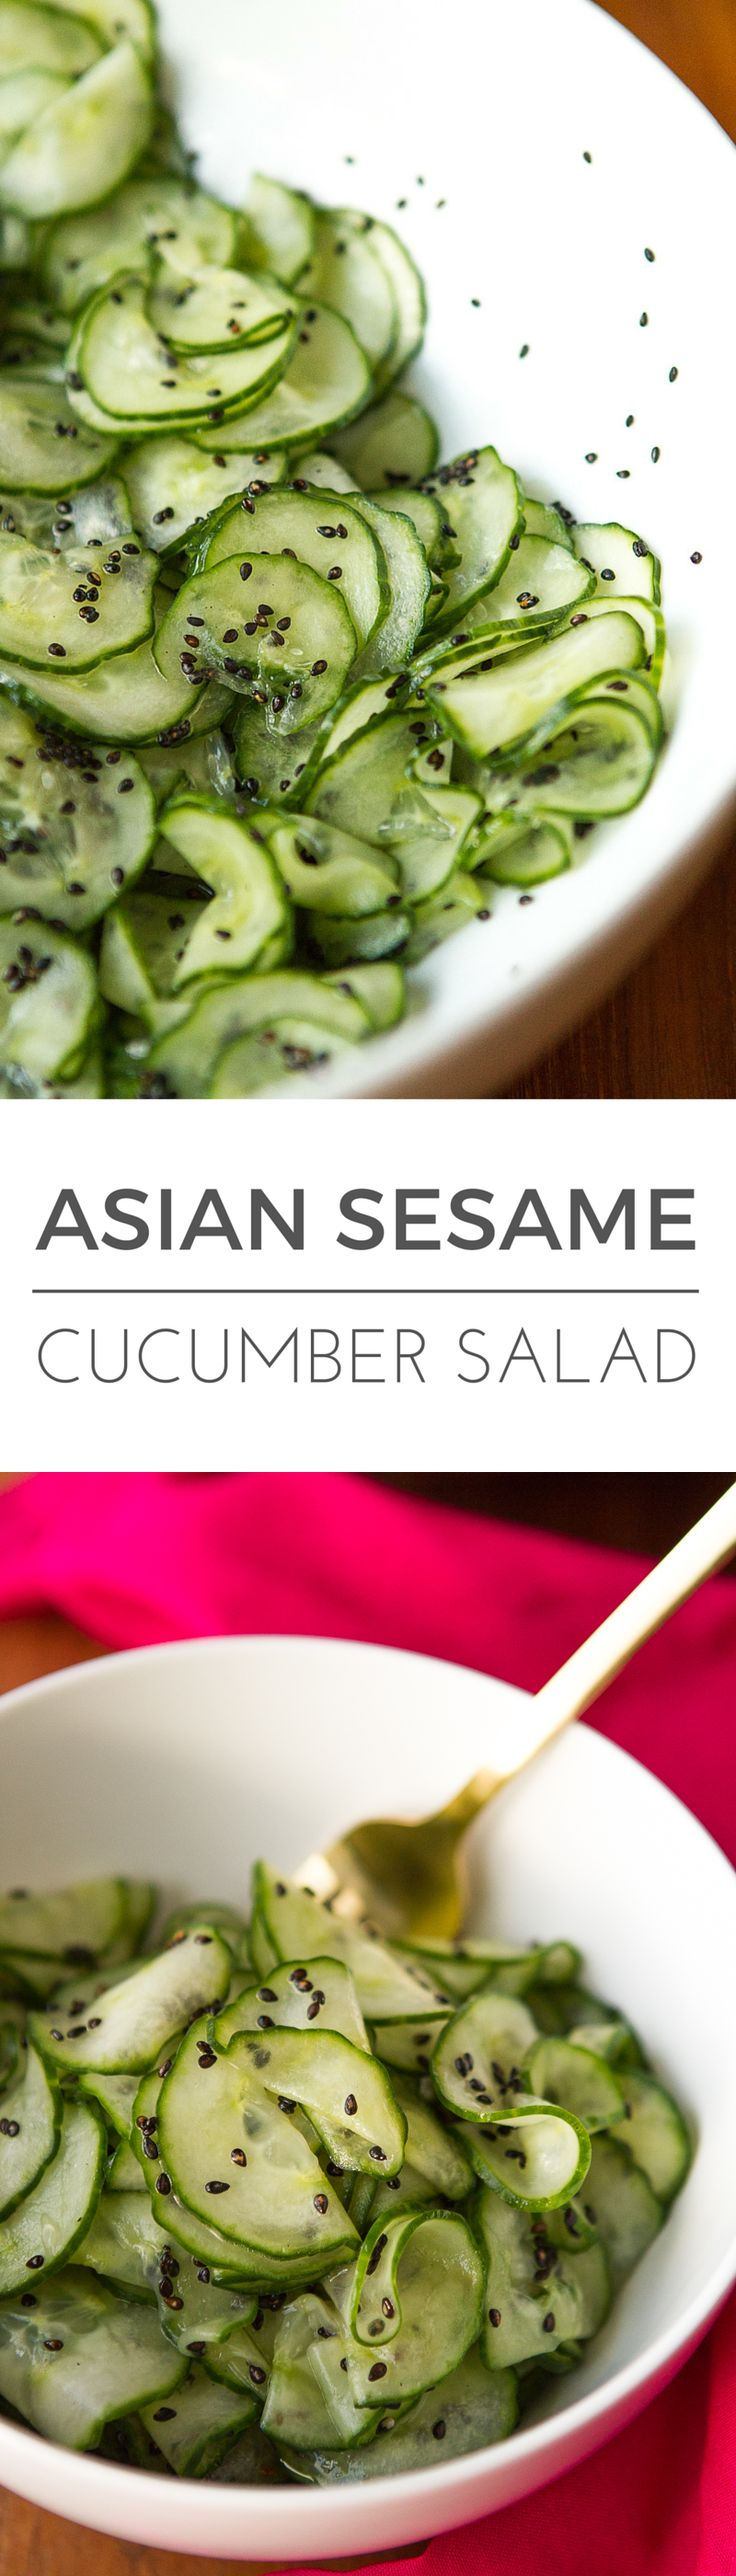 Asian Cucumber Salad -- this simple cucumber salad is super light and refreshing, perfect for hot summer days… Rice vinegar and dark sesame oil, along with toasted sesame seeds give it a delicious Asian flair! | via @unsophisticook on unsophisticook.com